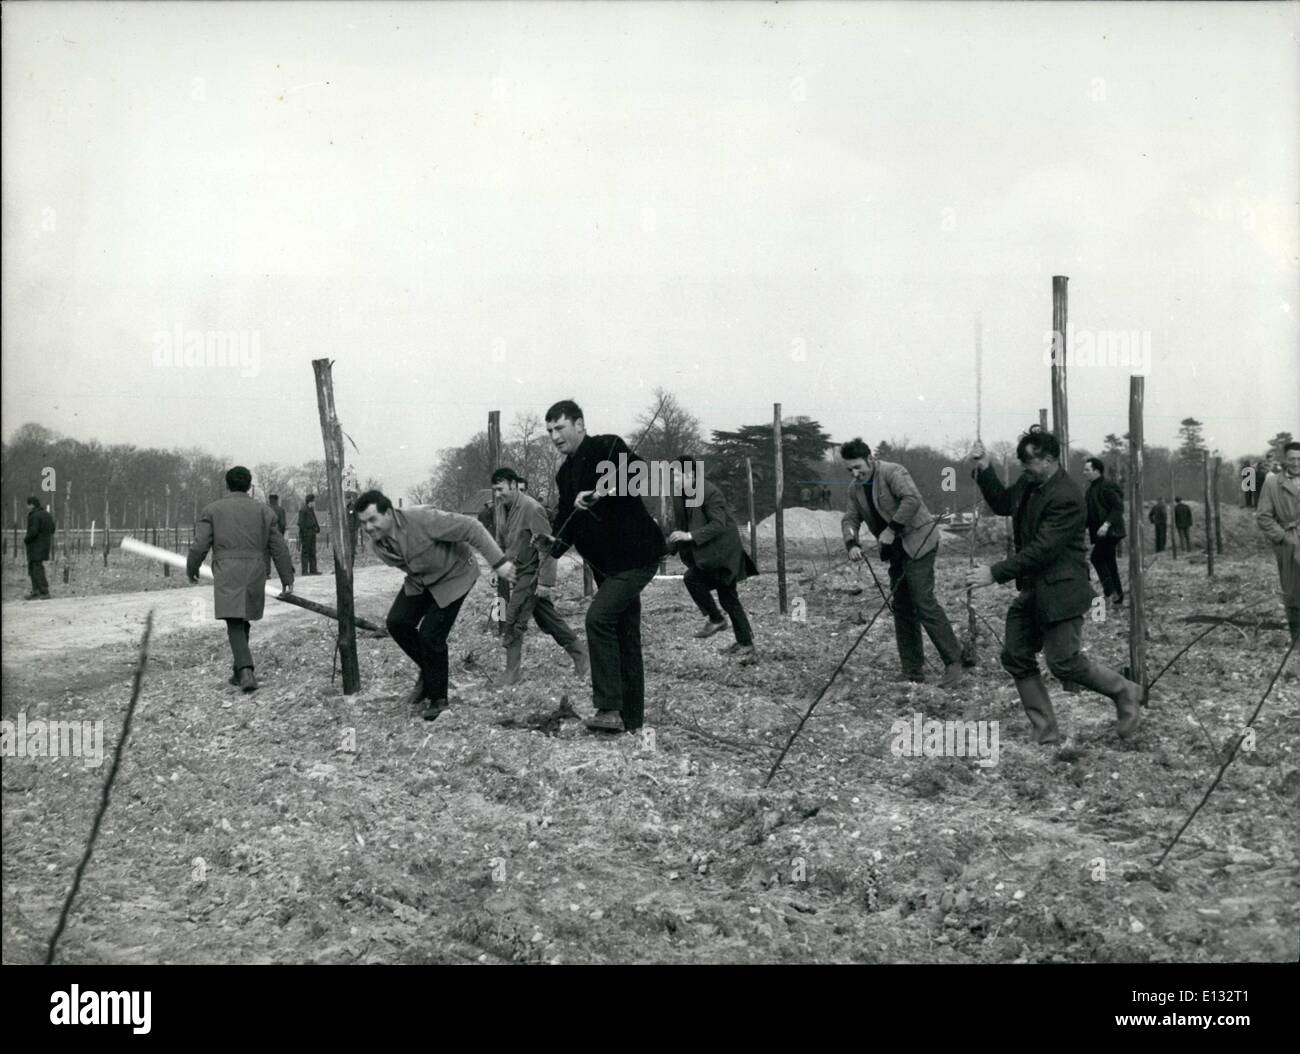 Feb. 26, 2012 - Angry Farmers Destroy Orchard: Anfry farmers from Lude, near Le mans, broke into an apple tree orhards Stock Photo